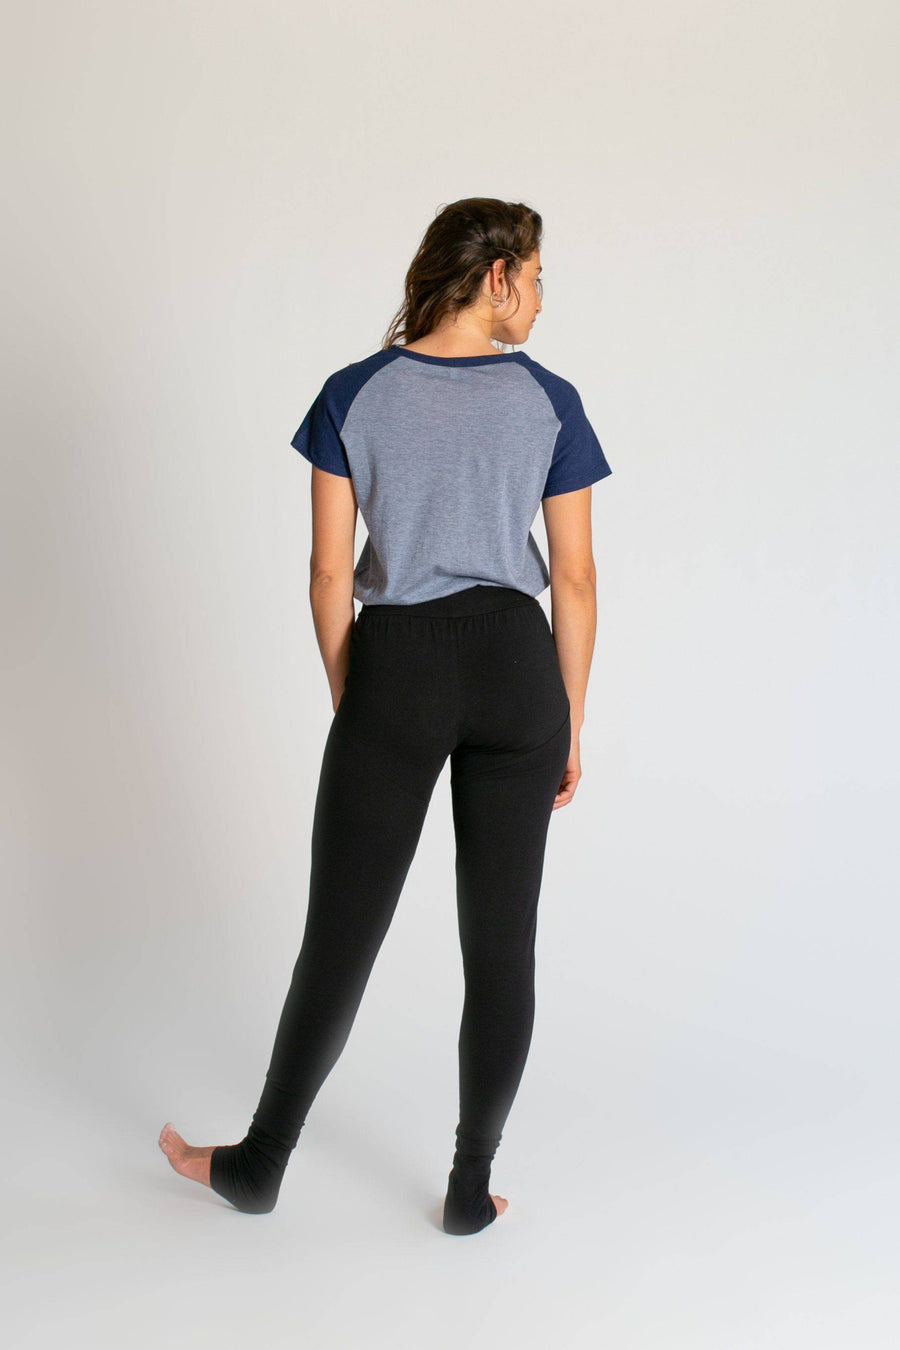 Limited Edition Raglan T-Shirt womens clothing rippleyogawear S light-blue-and-navy-pique